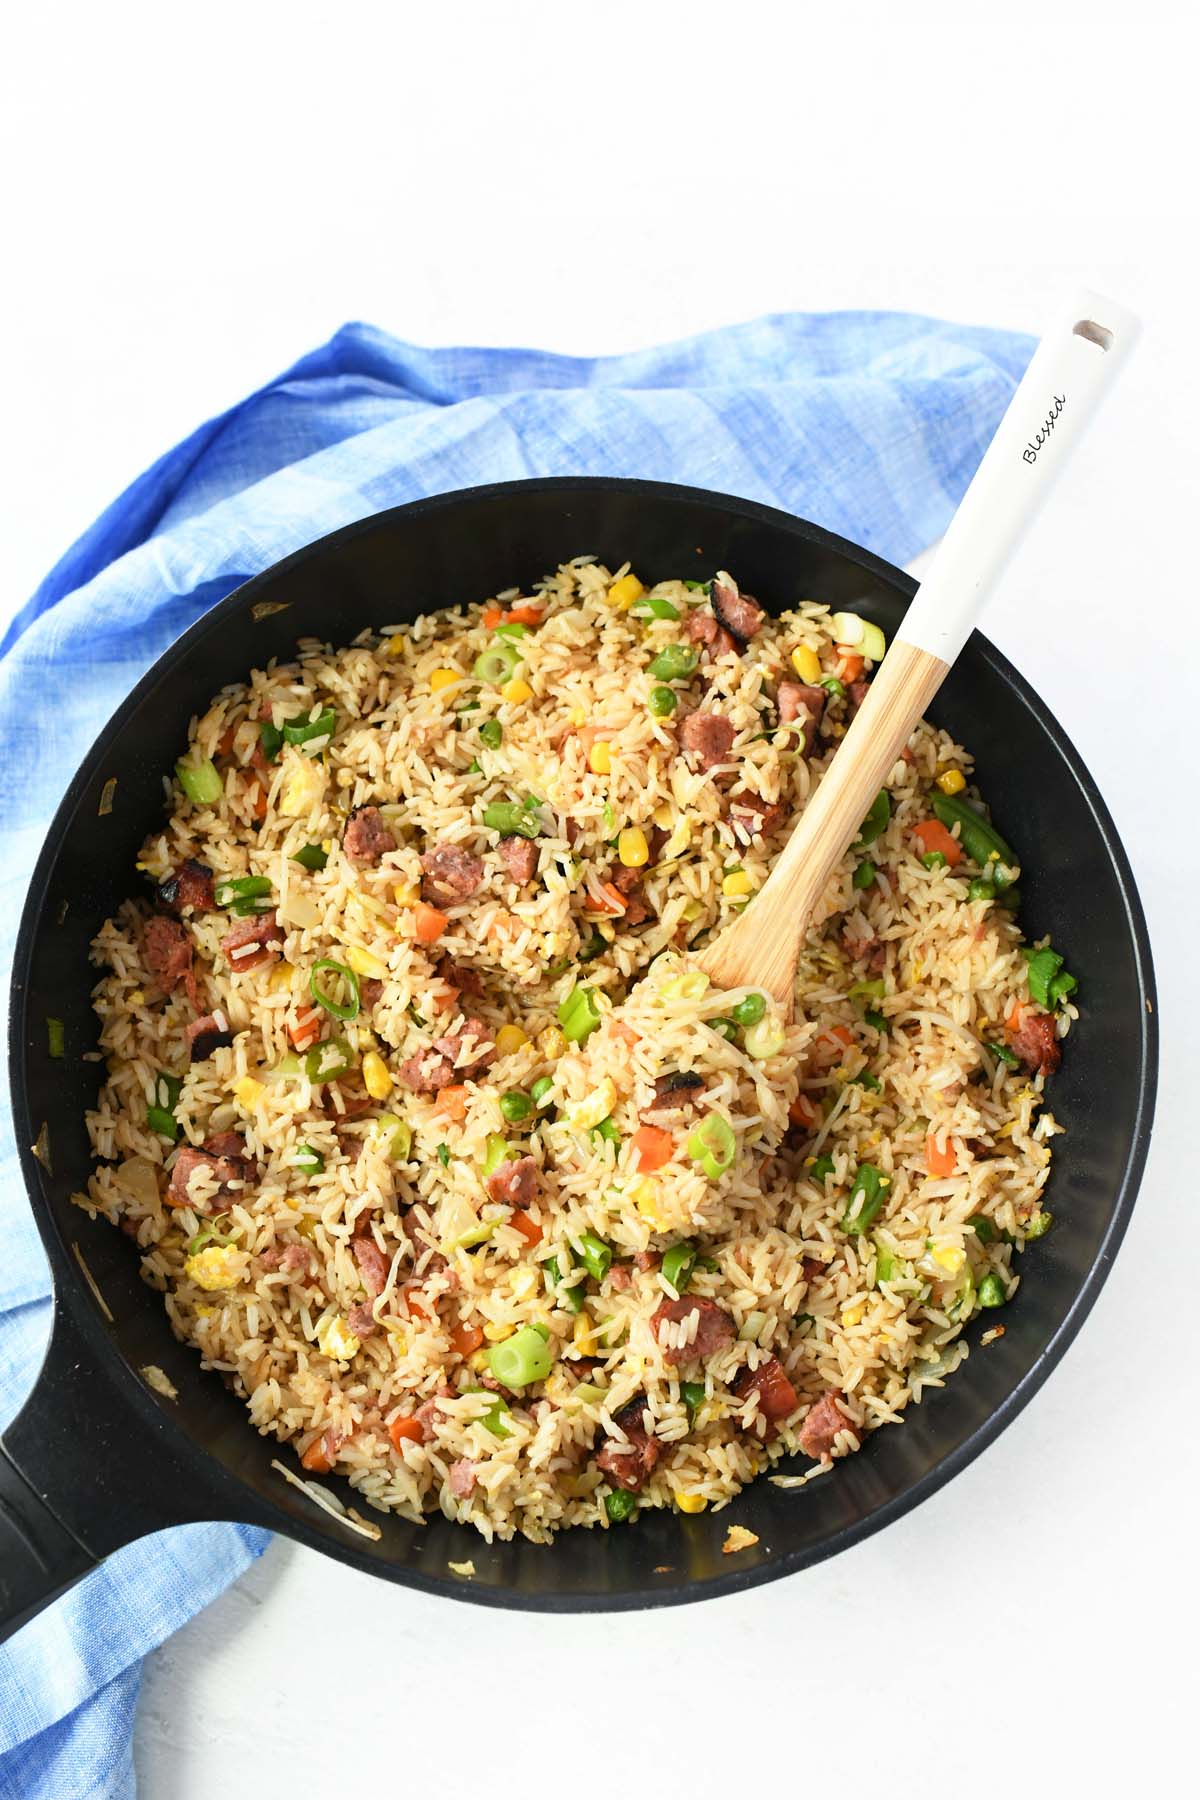 Chinese Fried rice with bean sprouts in a black wok.